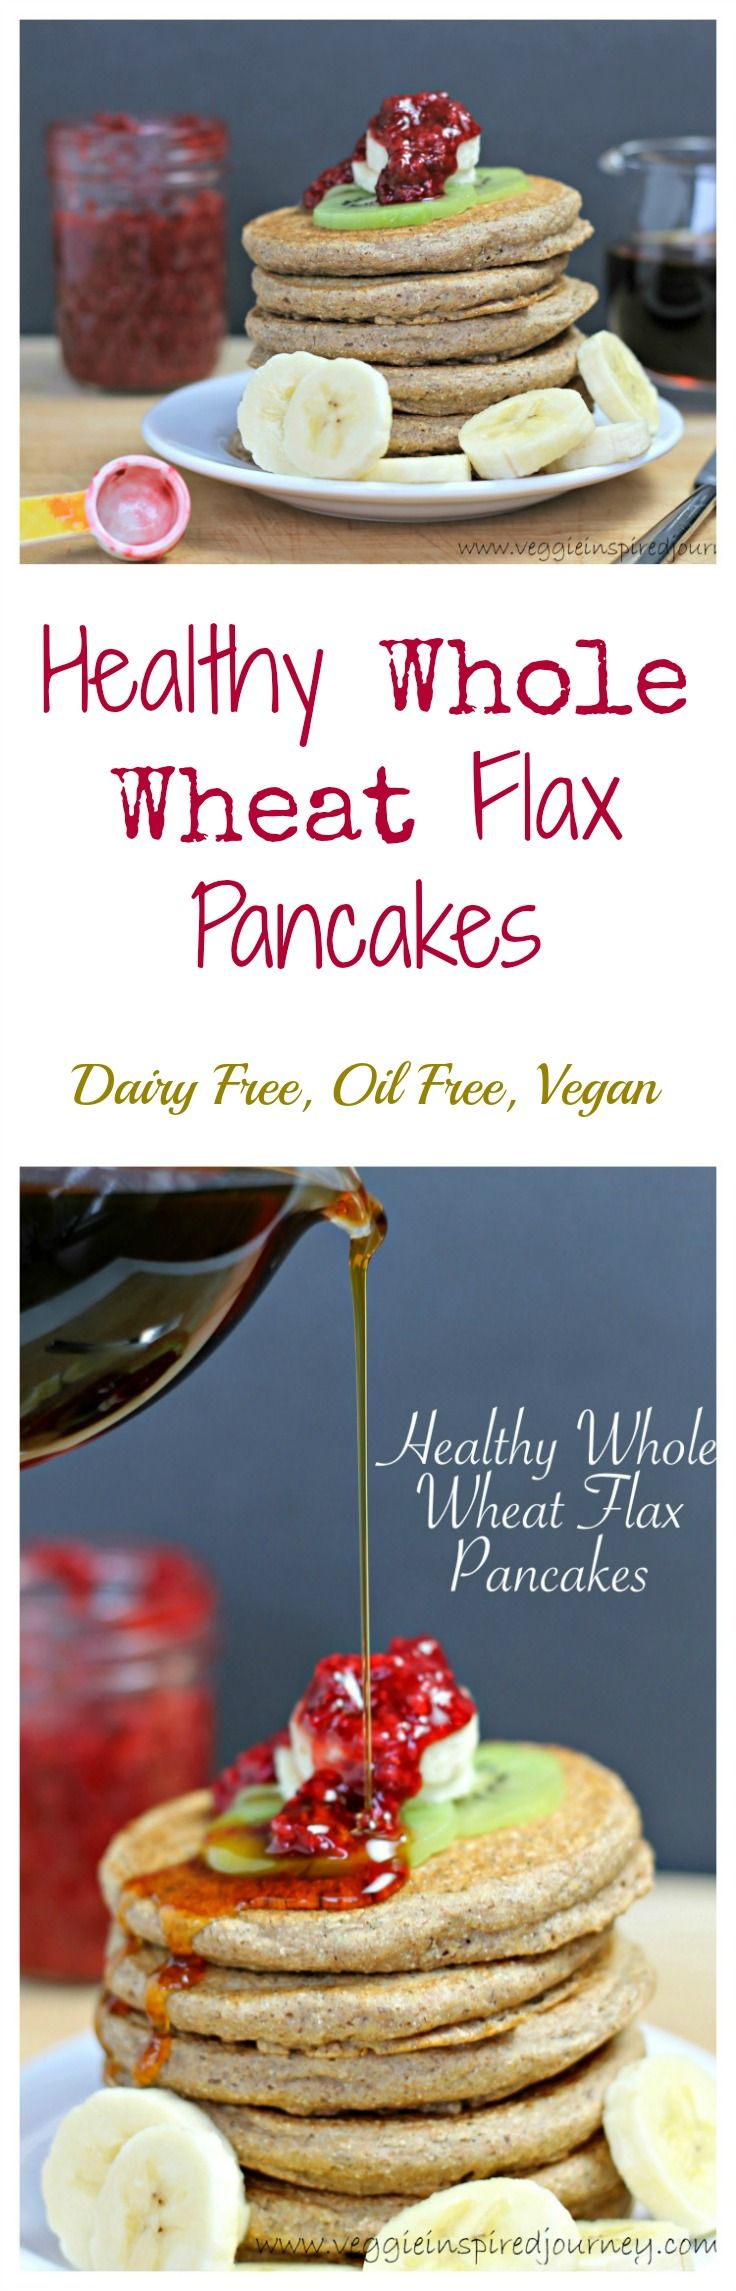 Healthy Whole Wheat Flax Pancakes - Delicious dairy free, oil free and vegan pancakes just begging for a topping of fresh fruit and pure maple syrup. Grab a fork and dig in!